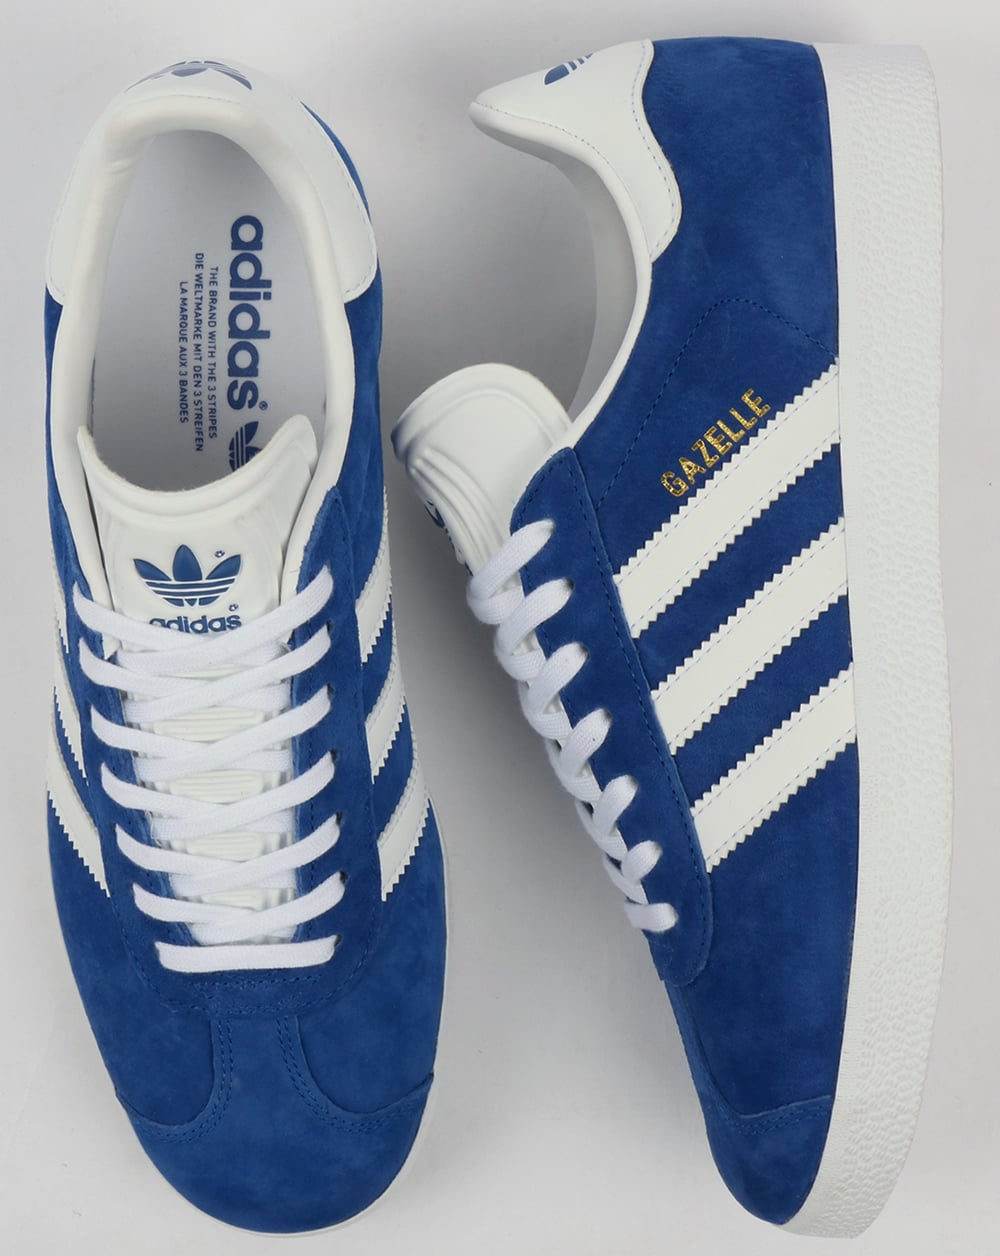 best authentic 2be31 4e25c adidas Trainers Adidas Gazelle Trainers Royal BlueWhite